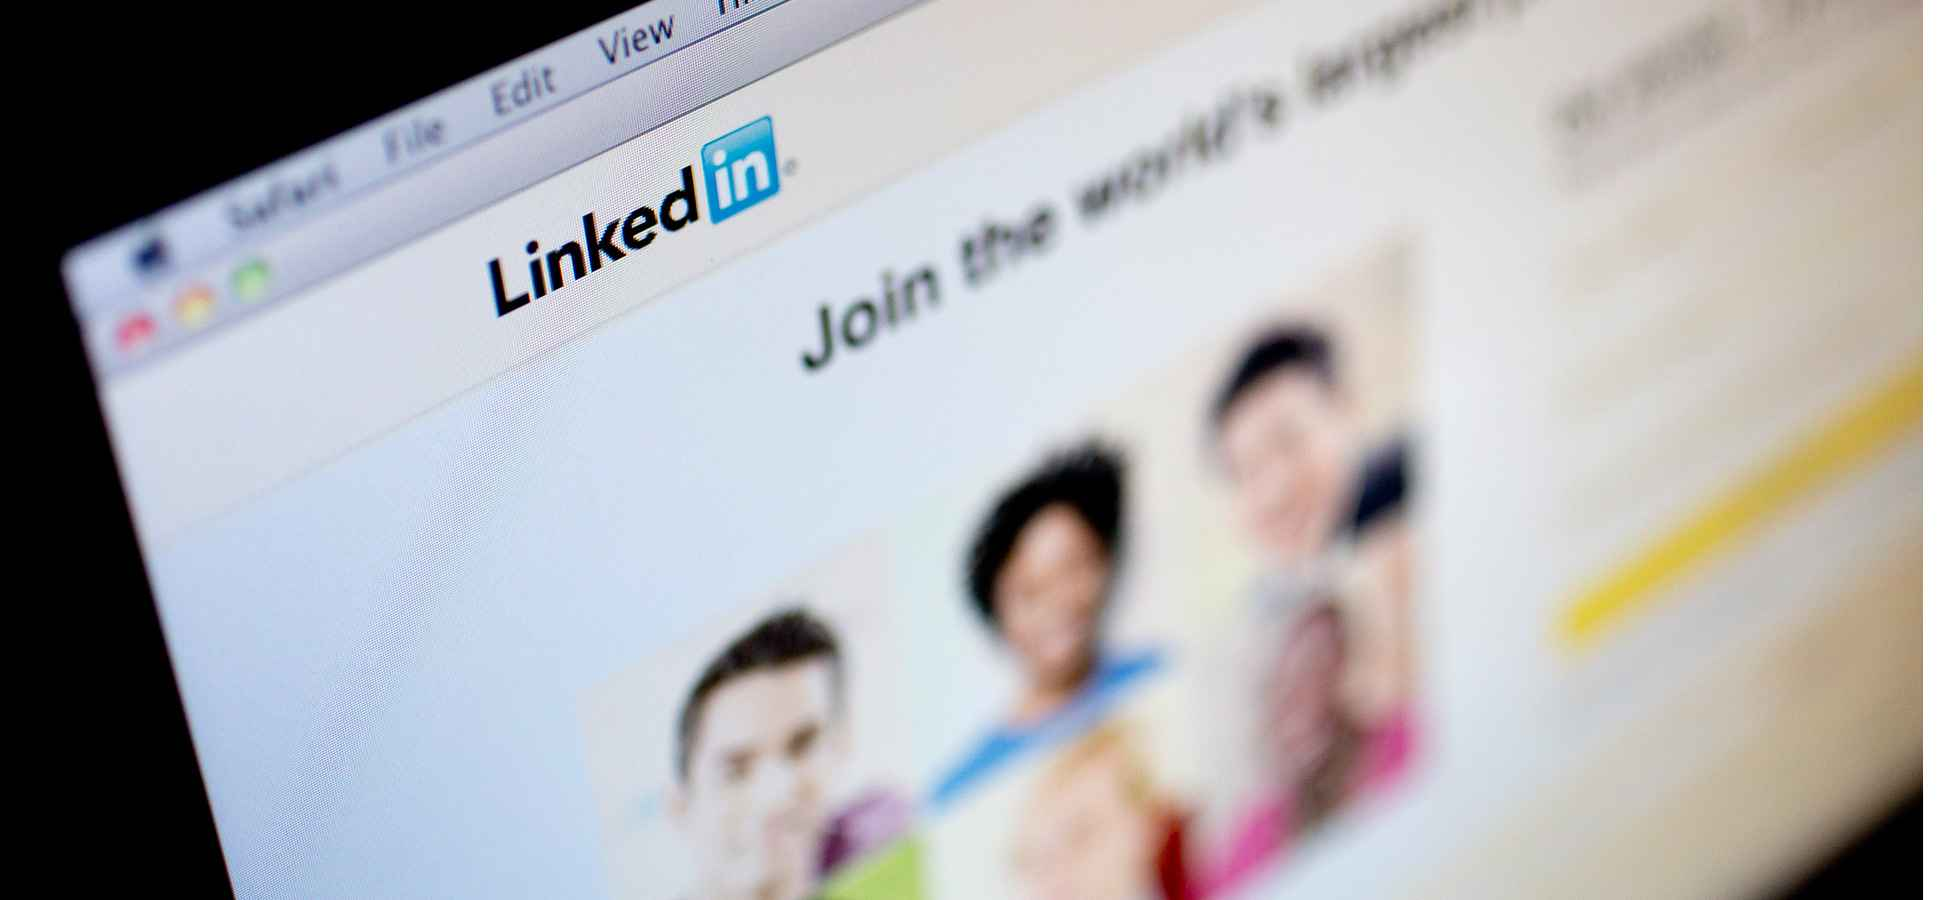 Win New Customers With LinkedIn: 4 Tips